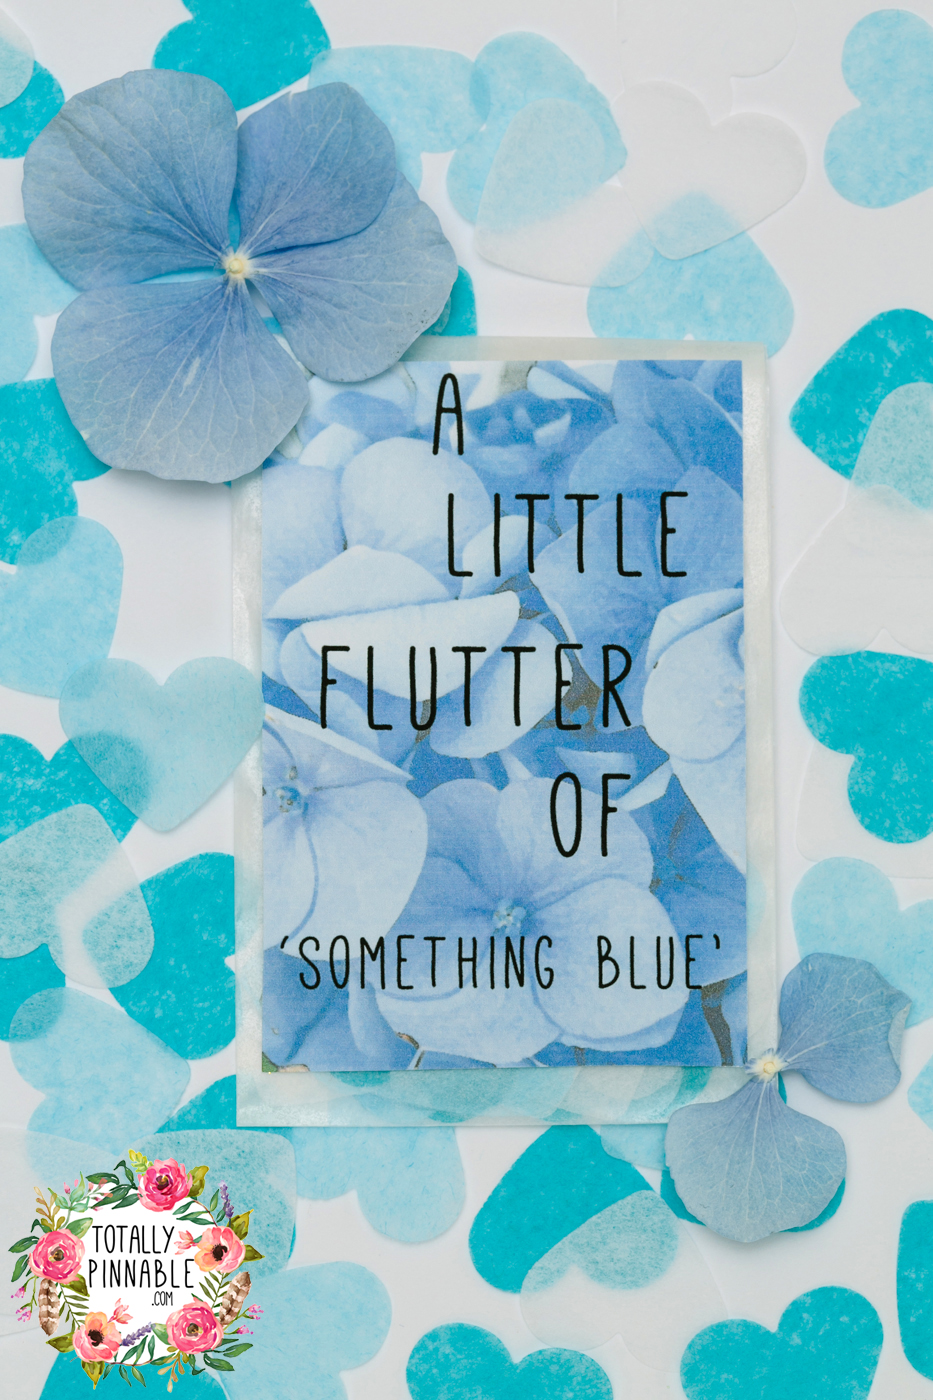 'something blue' for your wedding day confetti envelope by Totallypinnable.com